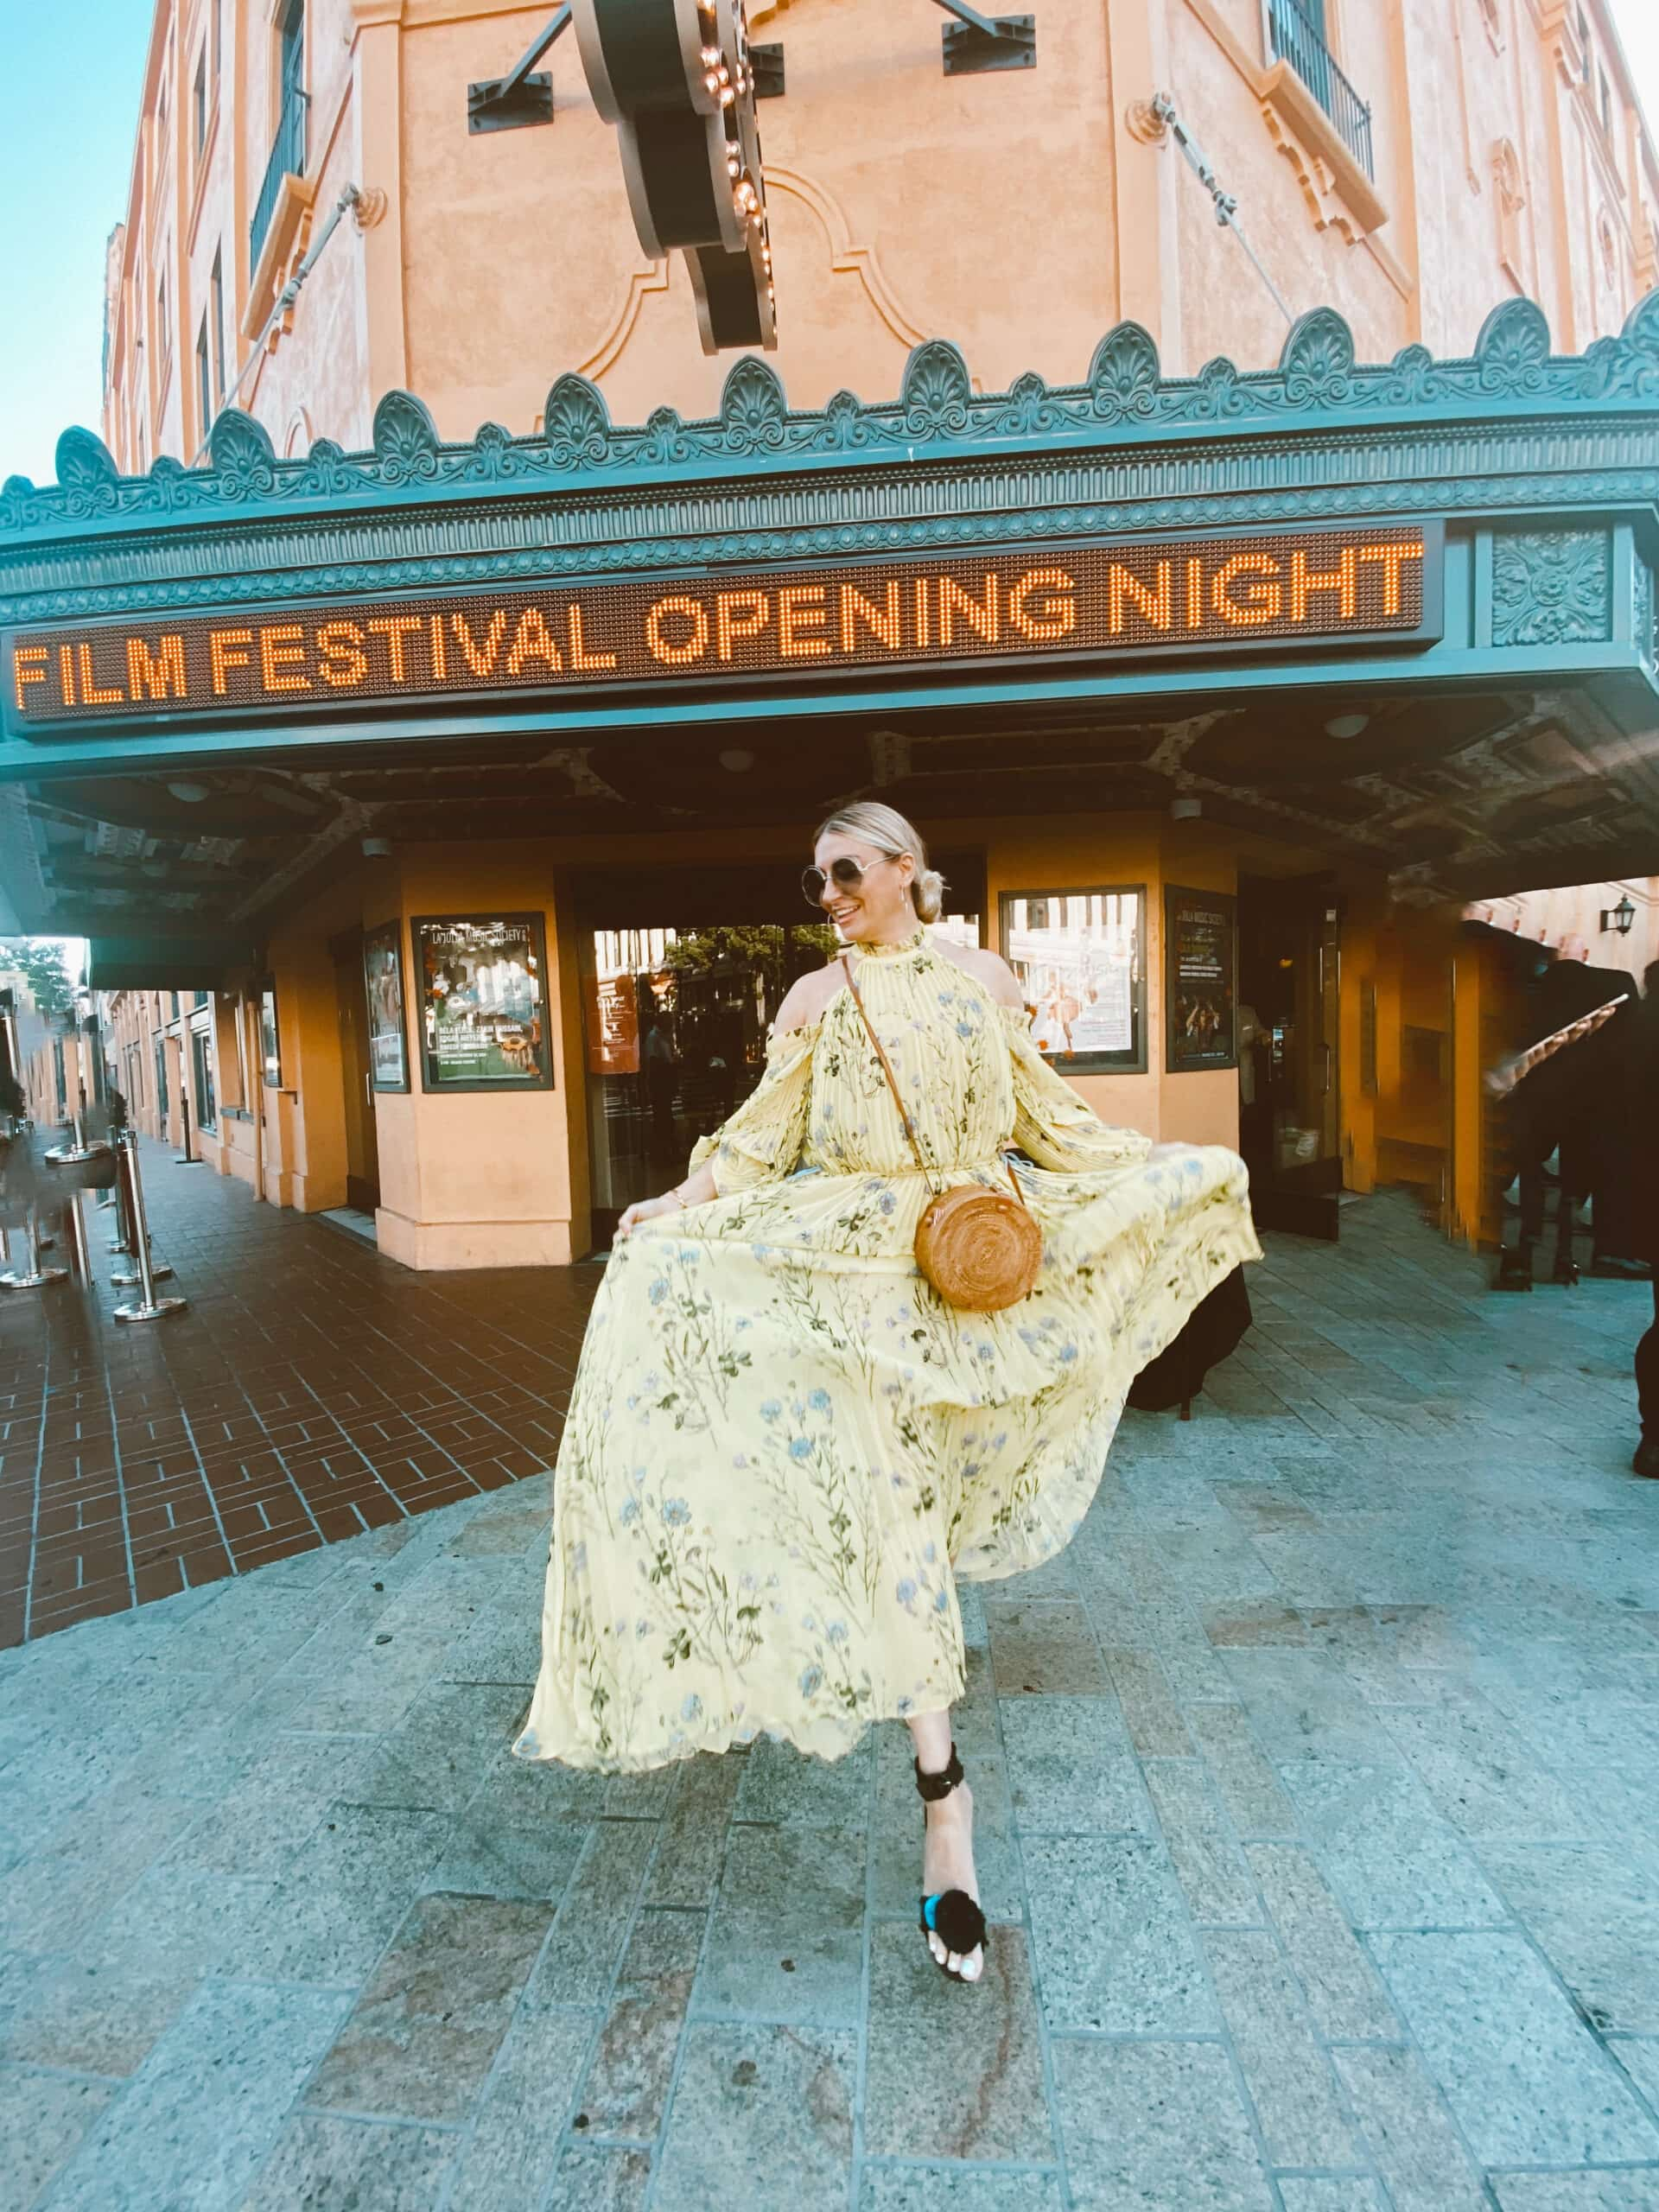 fashionable woman in dress in front of theater